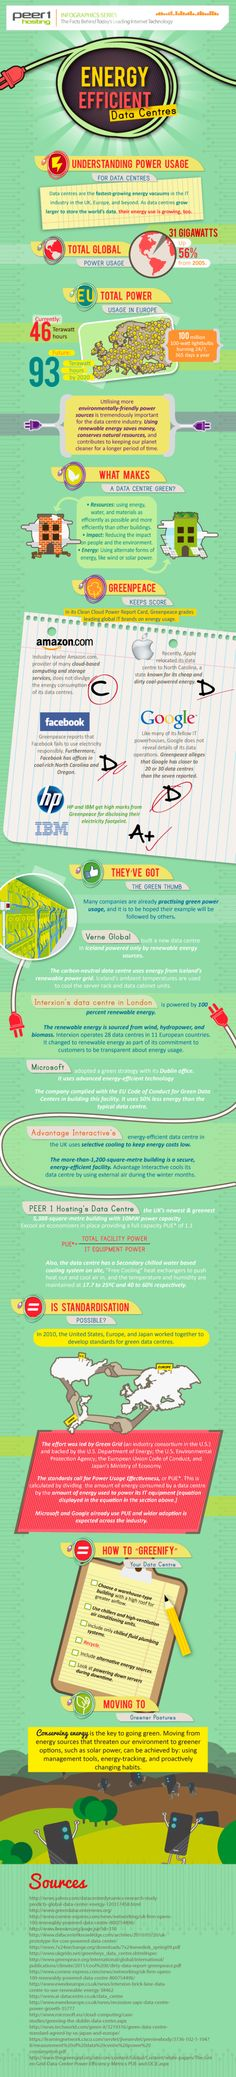 Data centers and energy efficiency